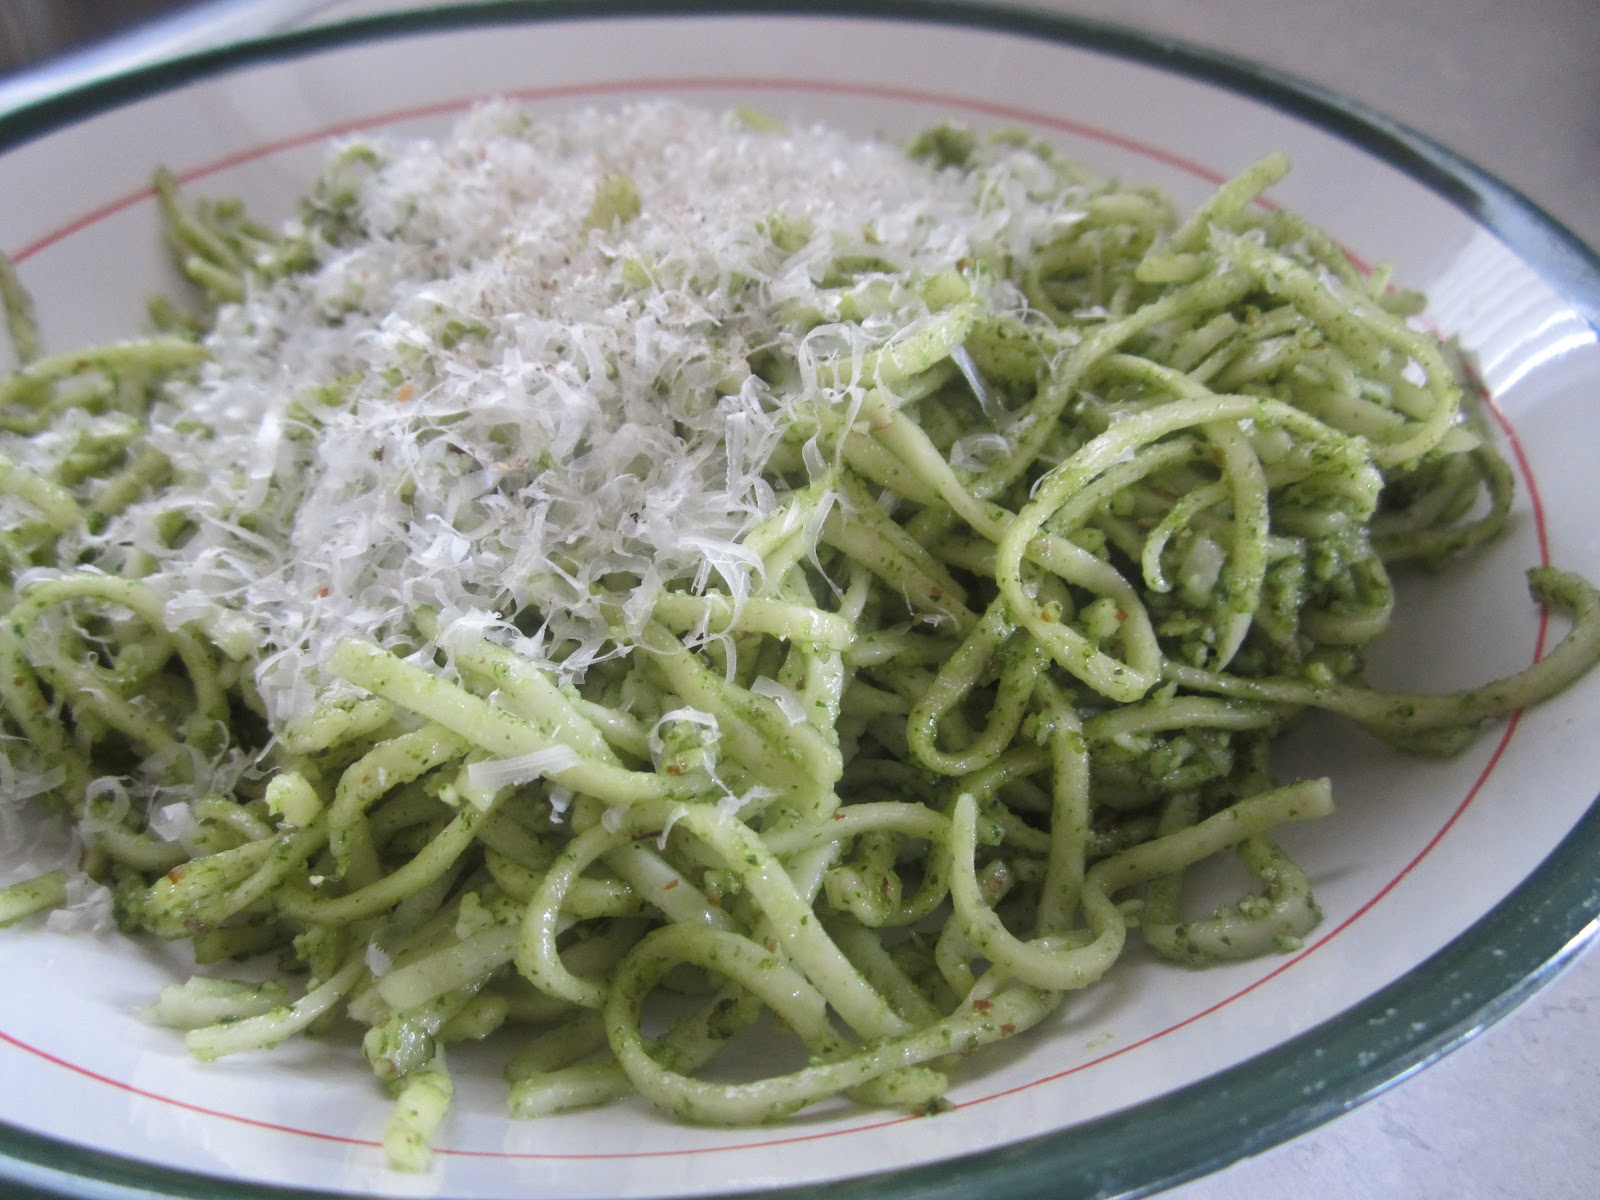 Pesto Marinade for Chicken or Shrimp